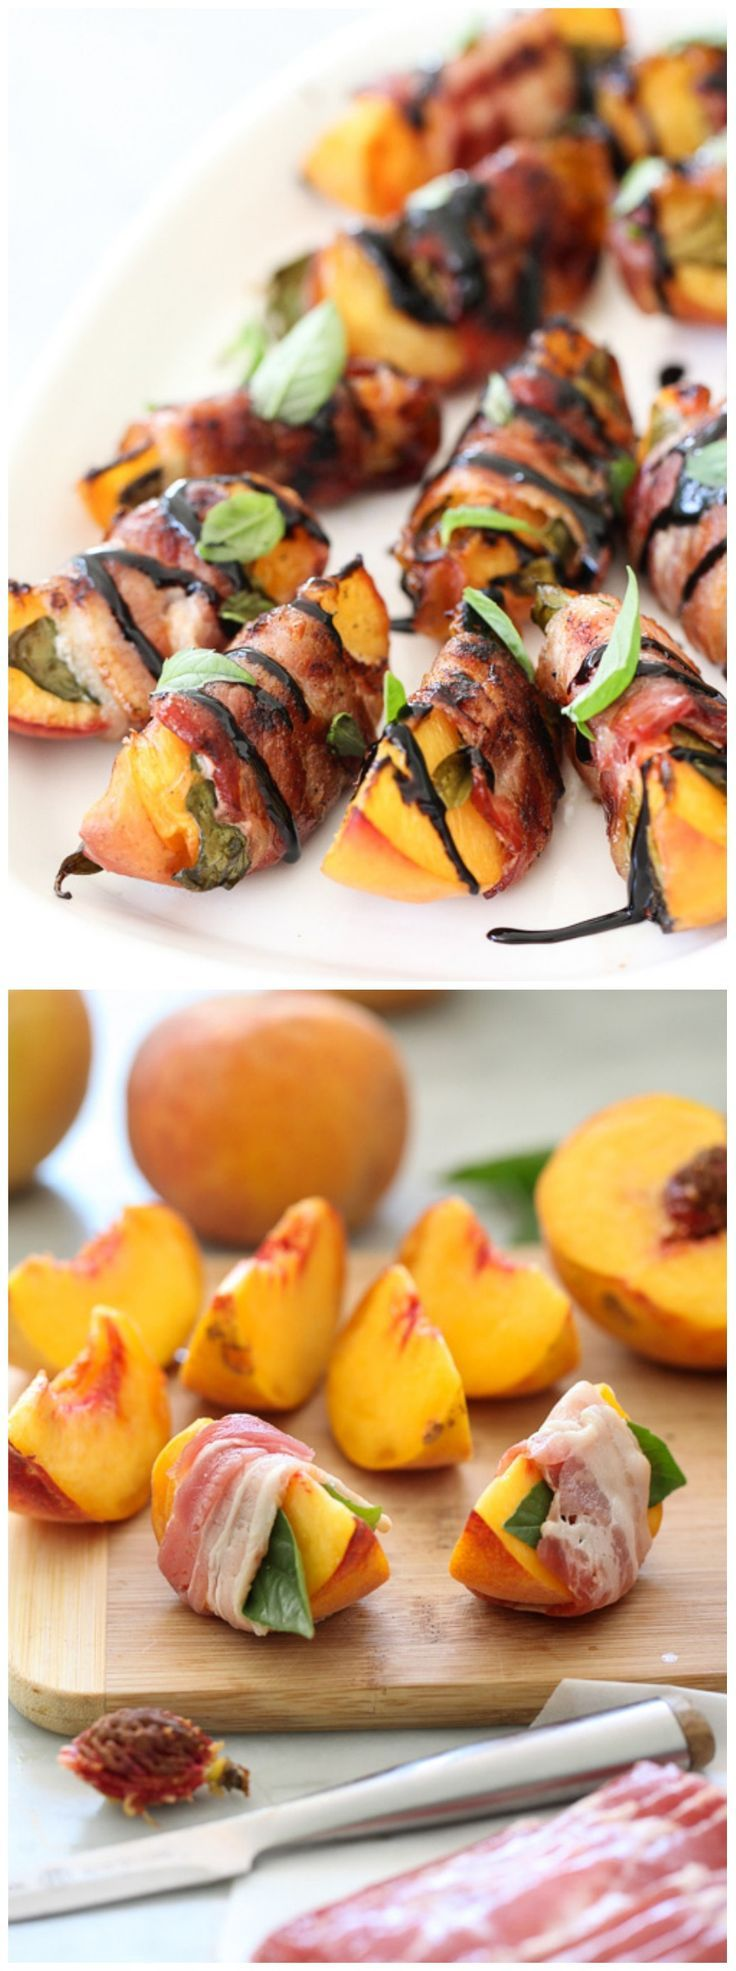 Bacon Wrapped Grilled Peaches with Balsamic Glaze. A refreshing, delicious appetizer for a spring or summer meal.